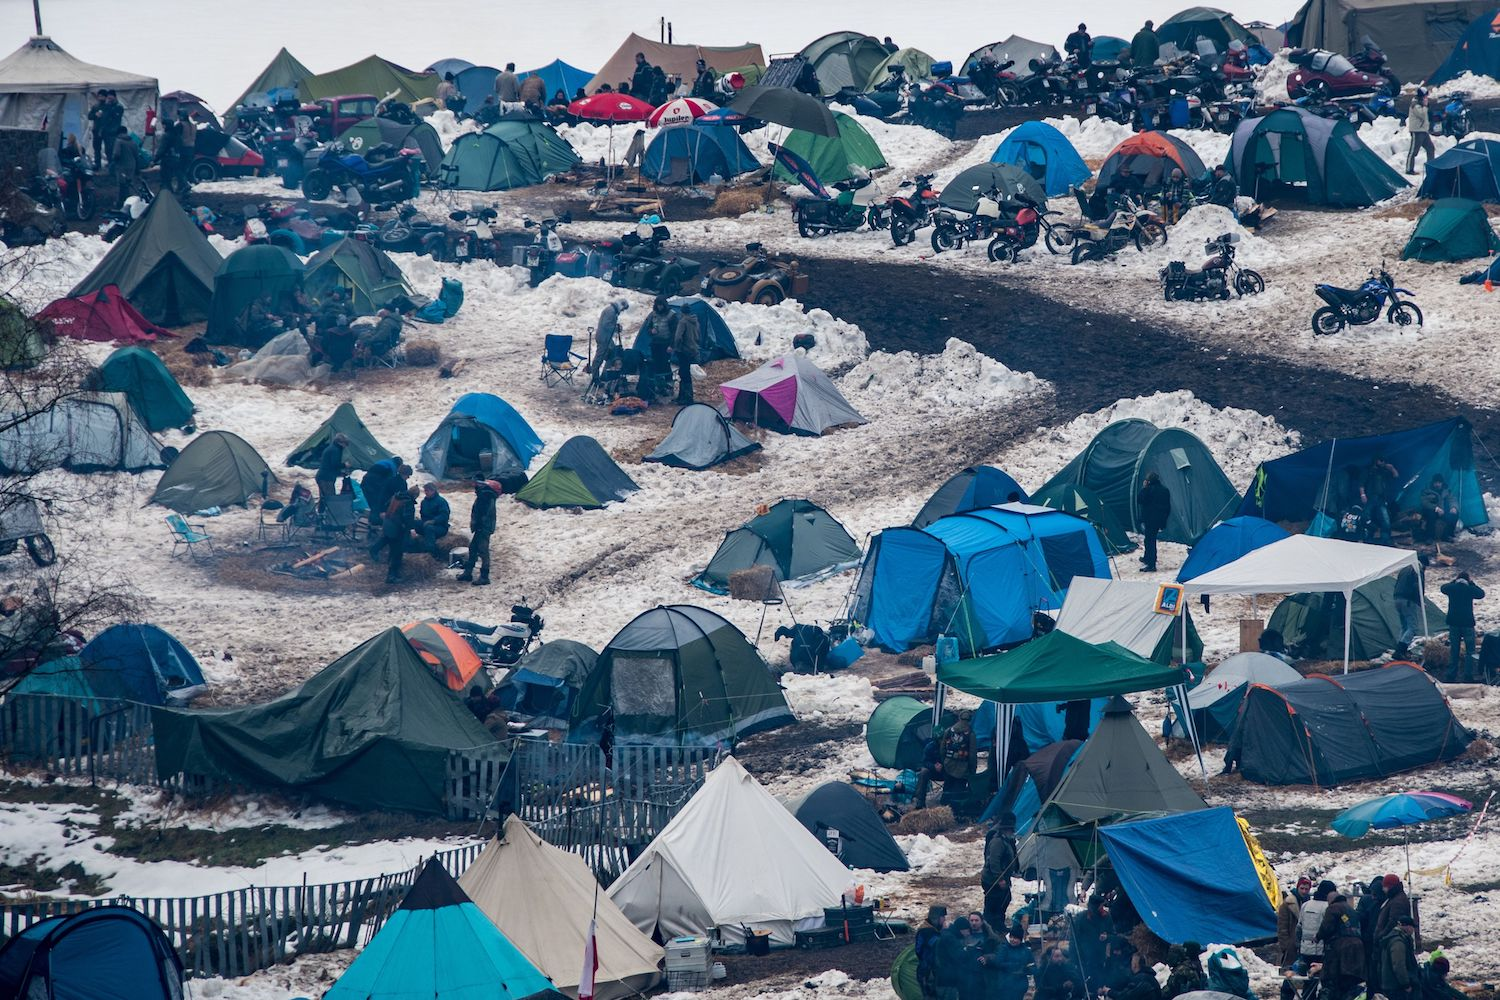 """TOPSHOT - Tents are pitched in the camp of the motorcyclist's gathering """"Elephant""""  in Thurmansbang, southern Germany on February 02, 2018.   / AFP PHOTO / dpa / Armin Weigel / Germany OUT        (Photo credit should read ARMIN WEIGEL/AFP/Getty Images)"""